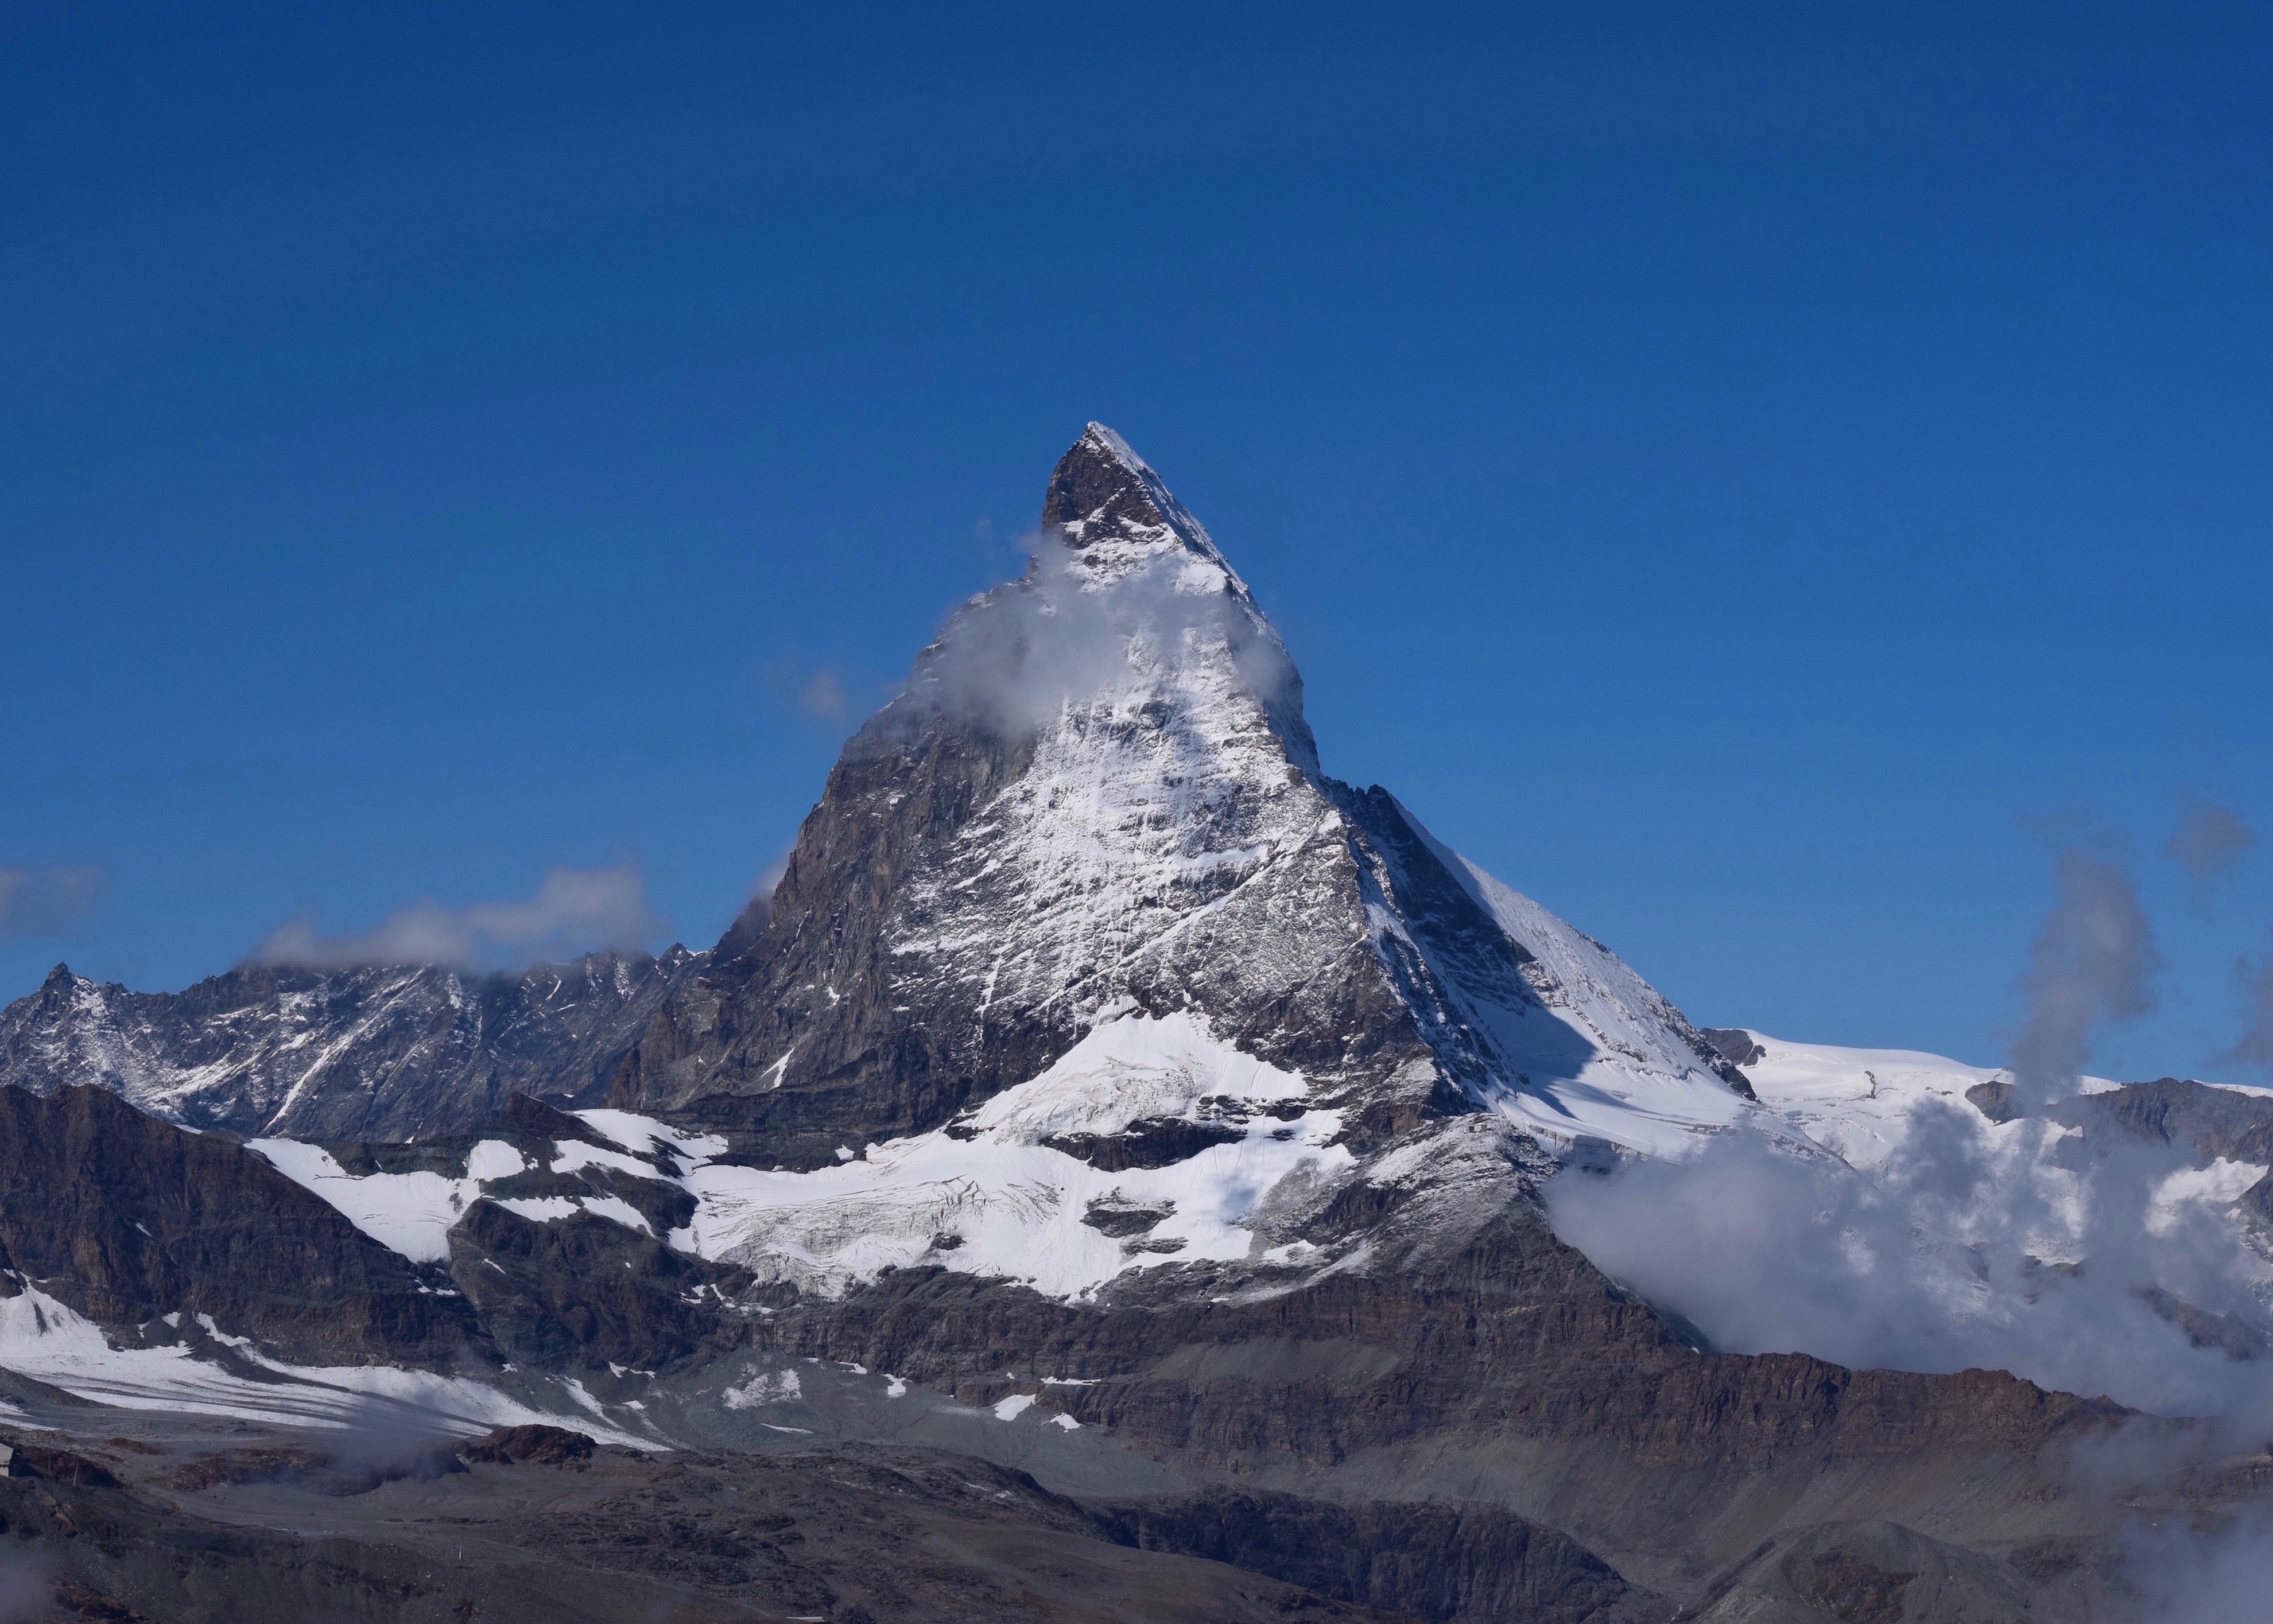 Matterhorn peak in summer, photo by Heidi M. Kim